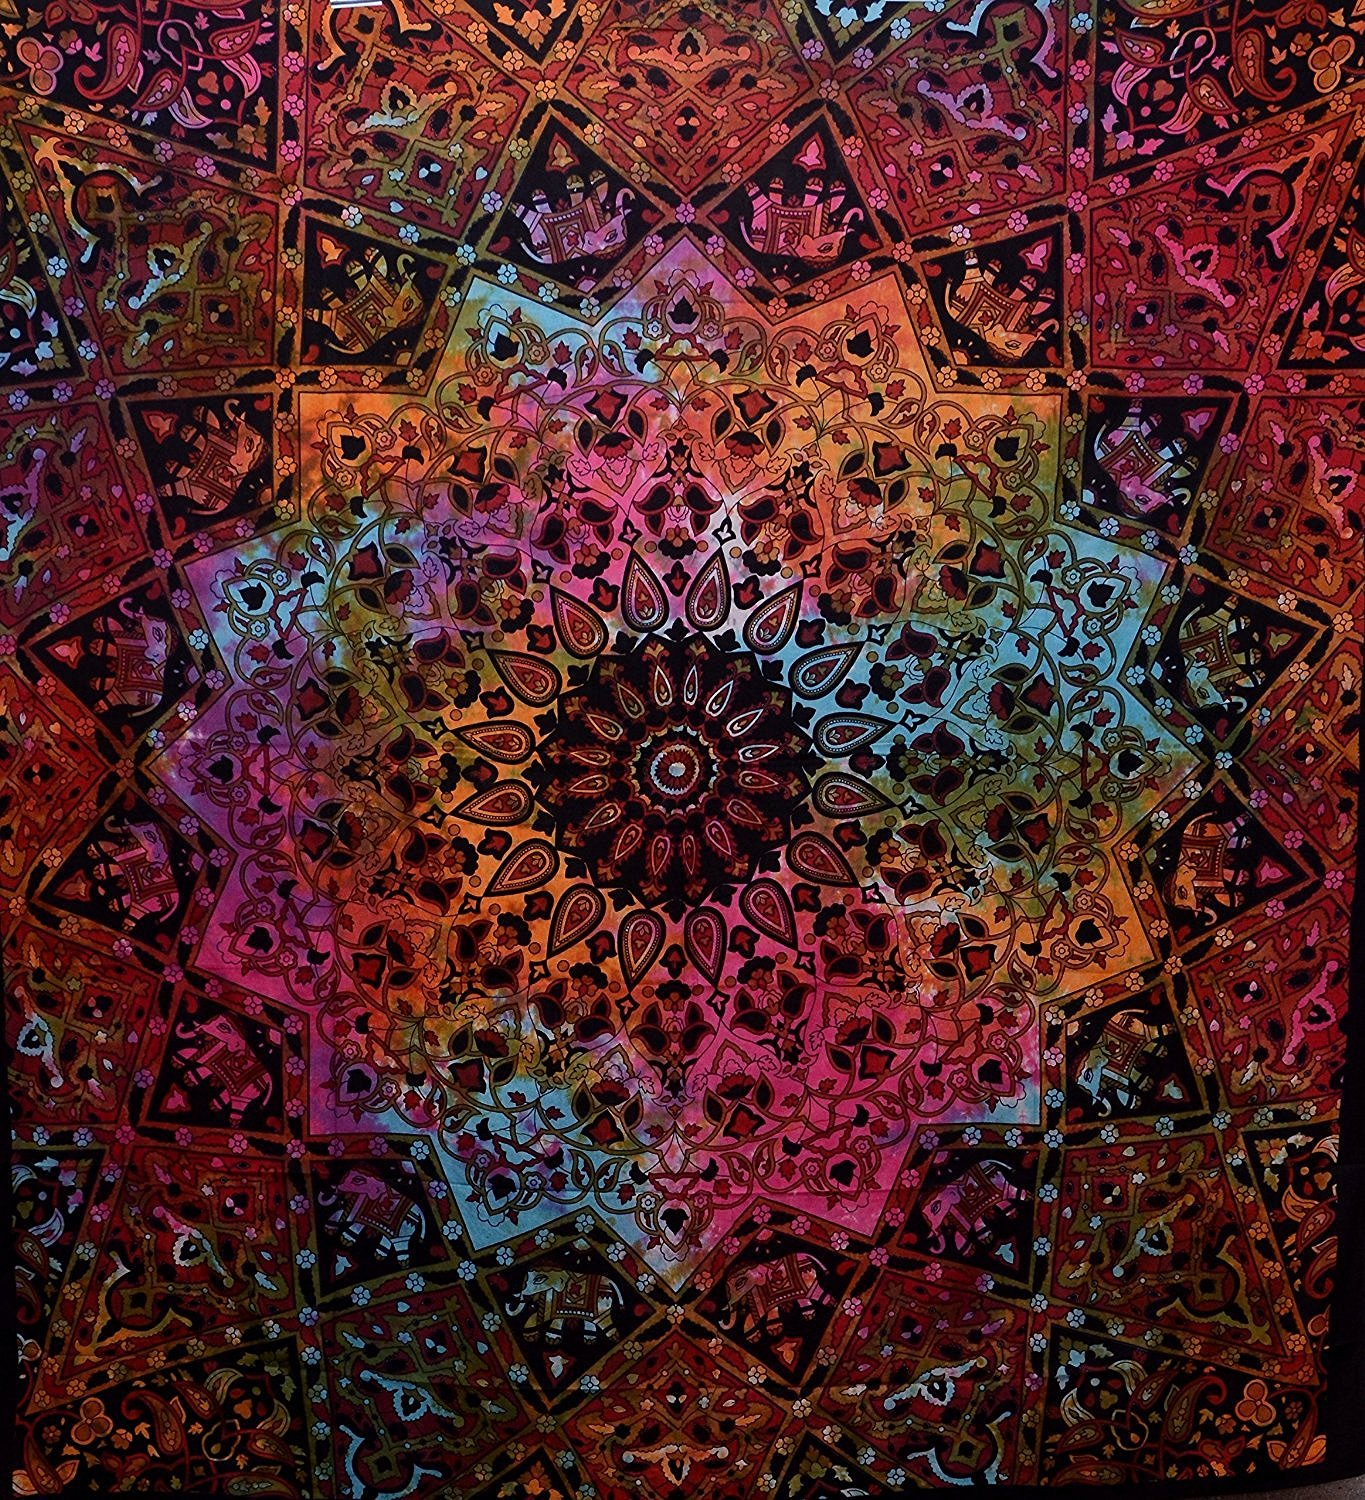 Amazoncom Indian hippie Bohemian psychedelic elephant Star mandala Wall hanging tapestry tie dye red